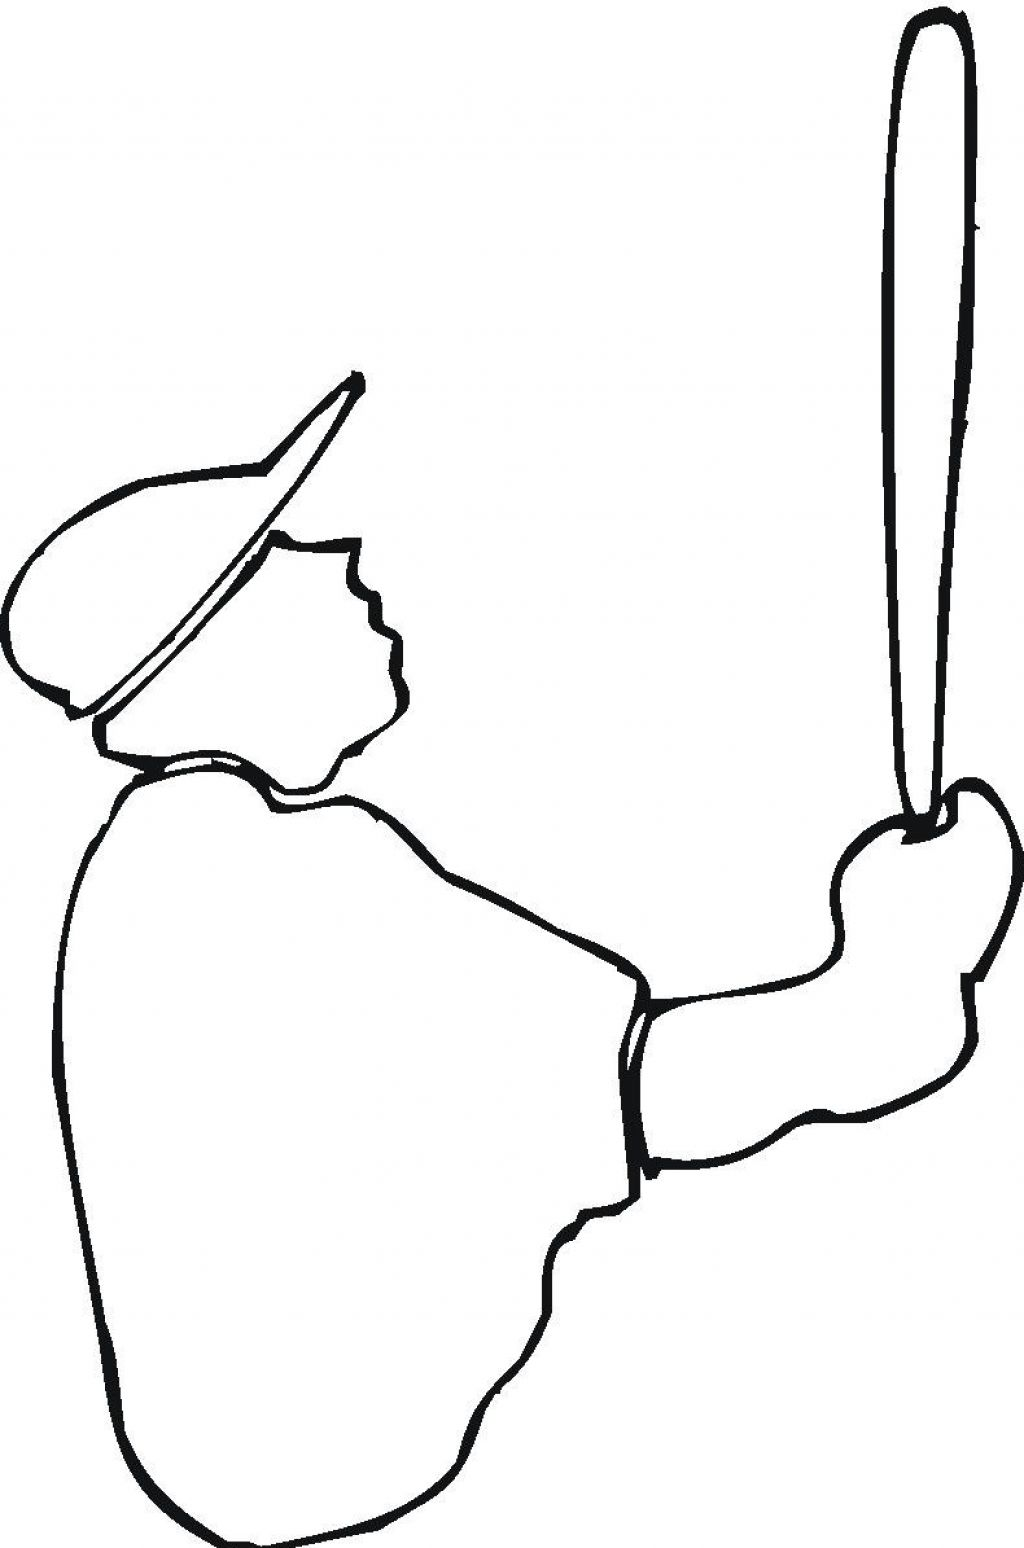 Person Outline Coloring Page